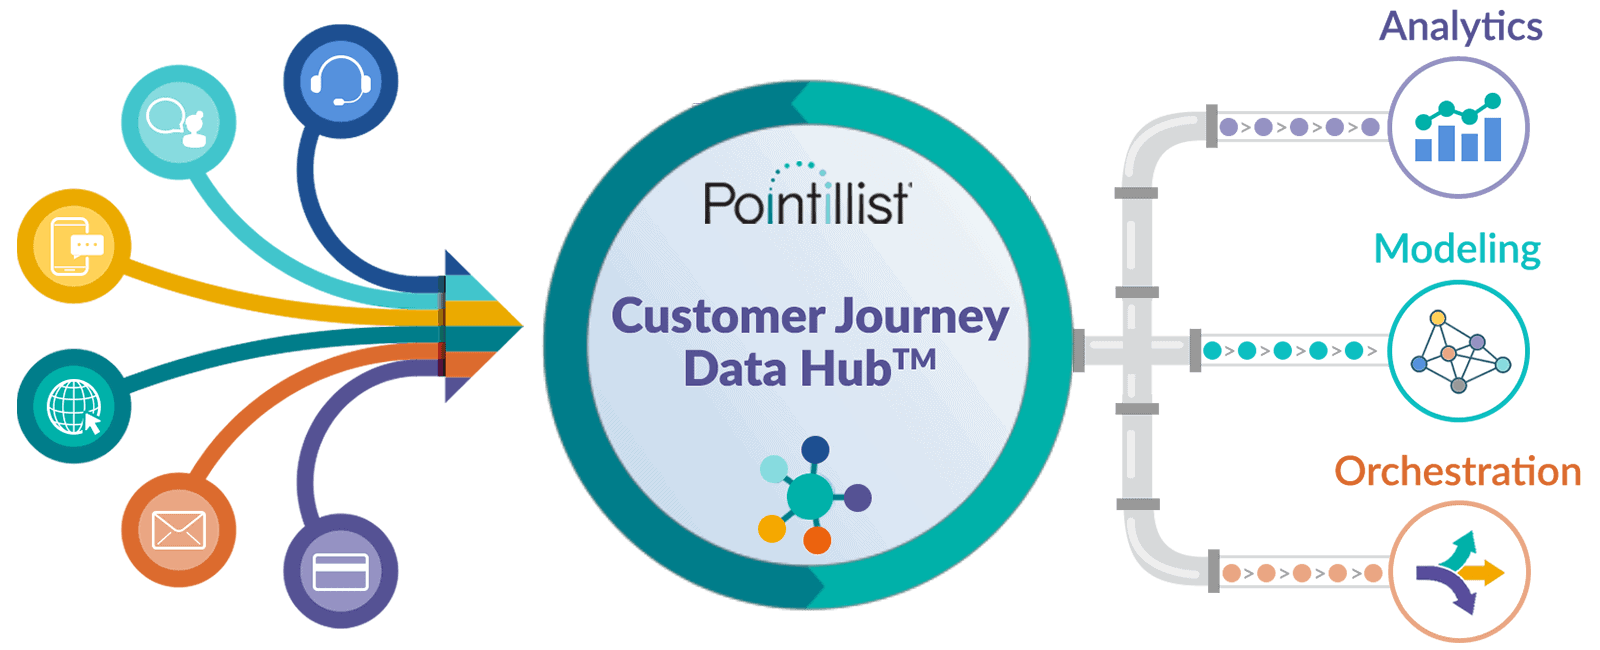 Pointillist's customer data management hub fuels enterprise analysis, modeling and orchestration